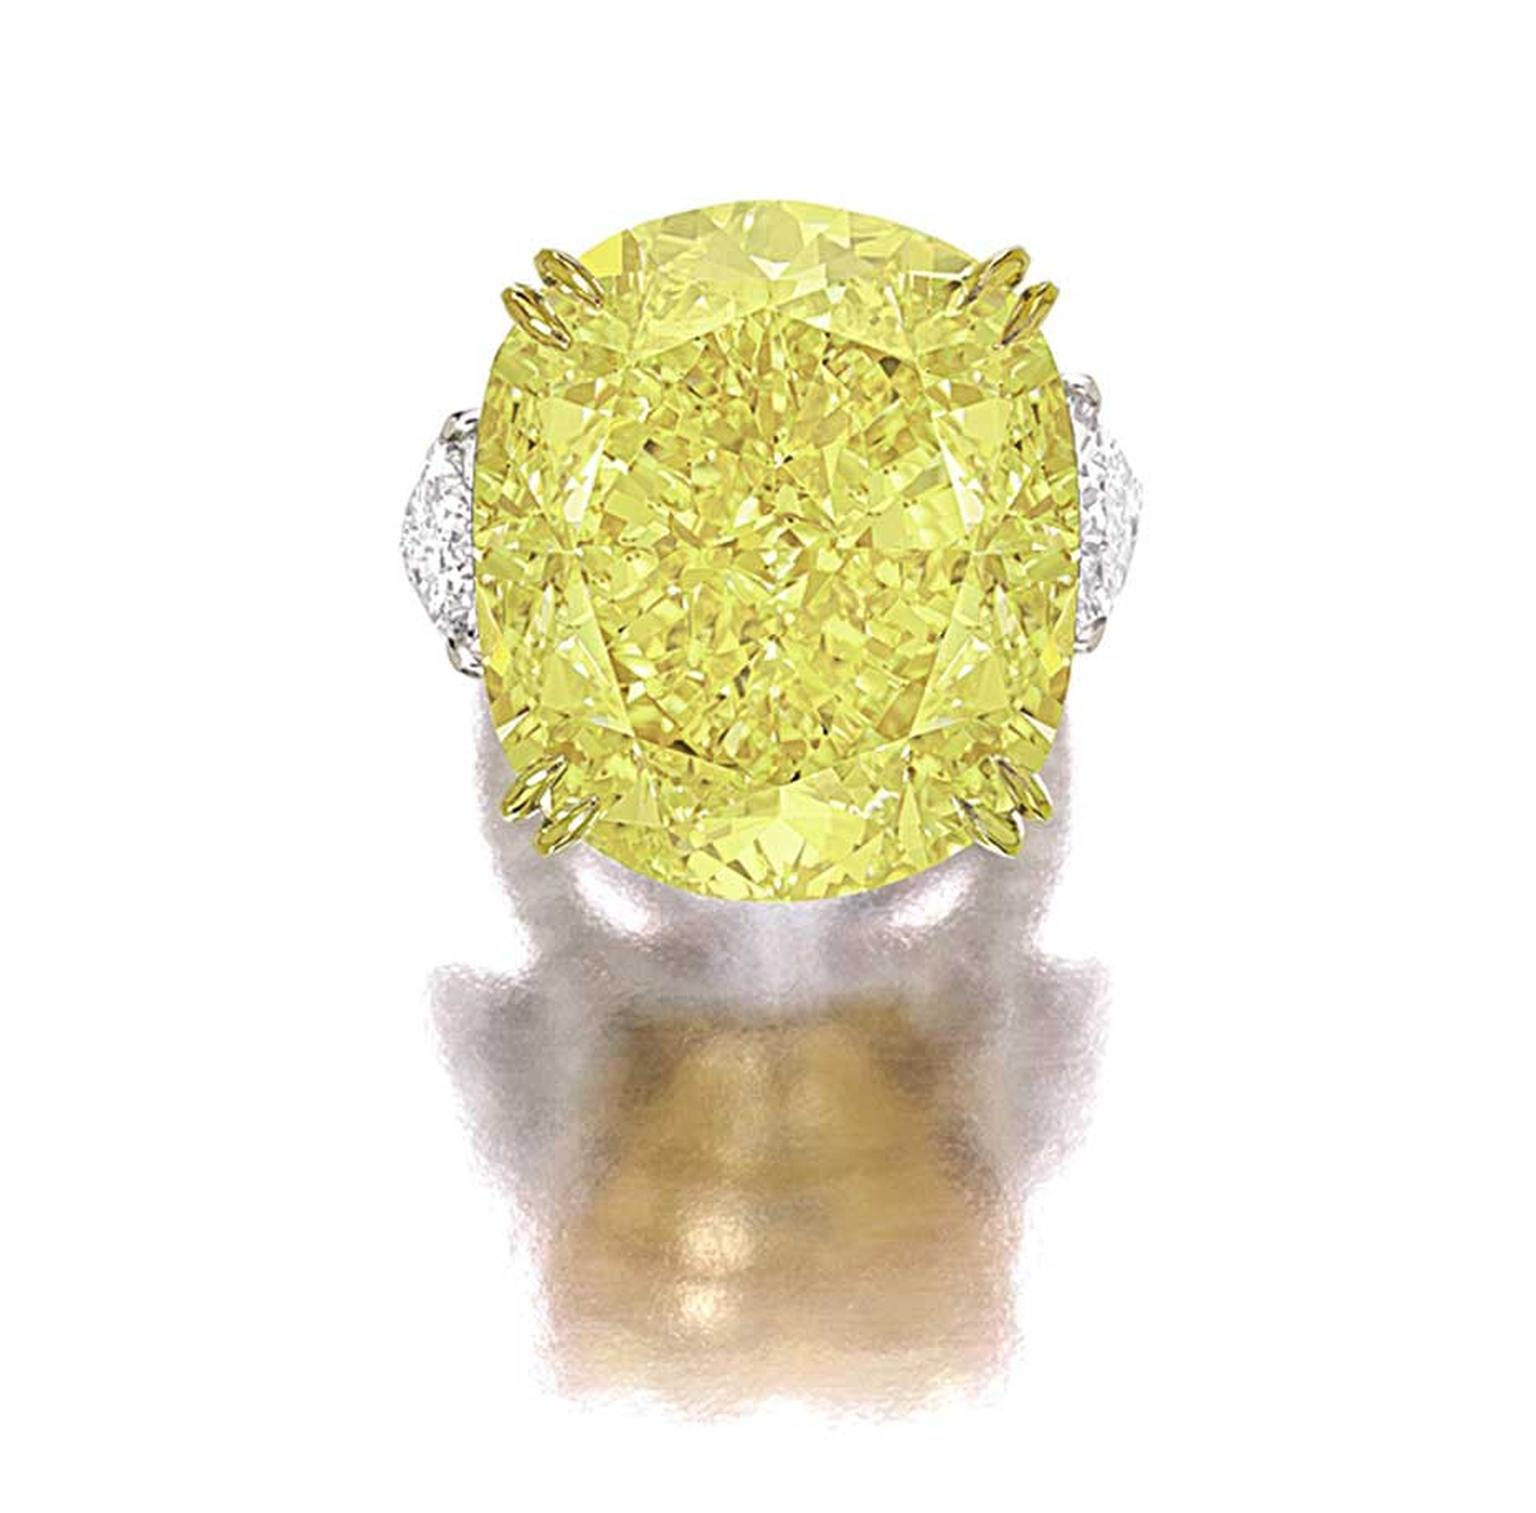 The top lot at Sotheby's Hong Kong Magnificent Jewels and Jadeite spring sale is a 77.77ct VS2 Fancy Vivid yellow diamond ring with an estimate of US$6.8m-7.5m.